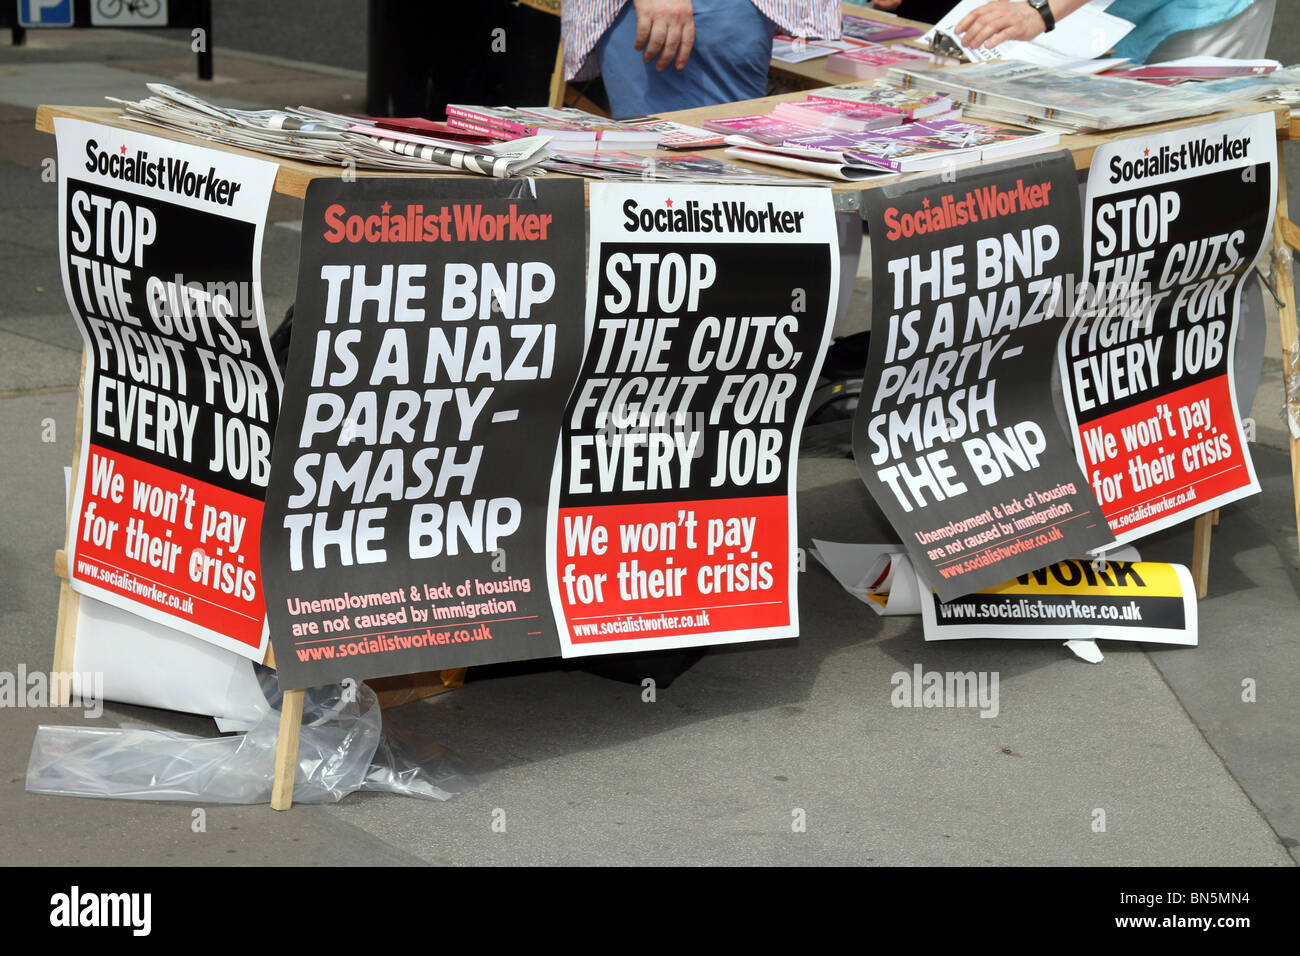 Socialist Worker anti BNP posters at Gay Pride London 2010 - Stock Image